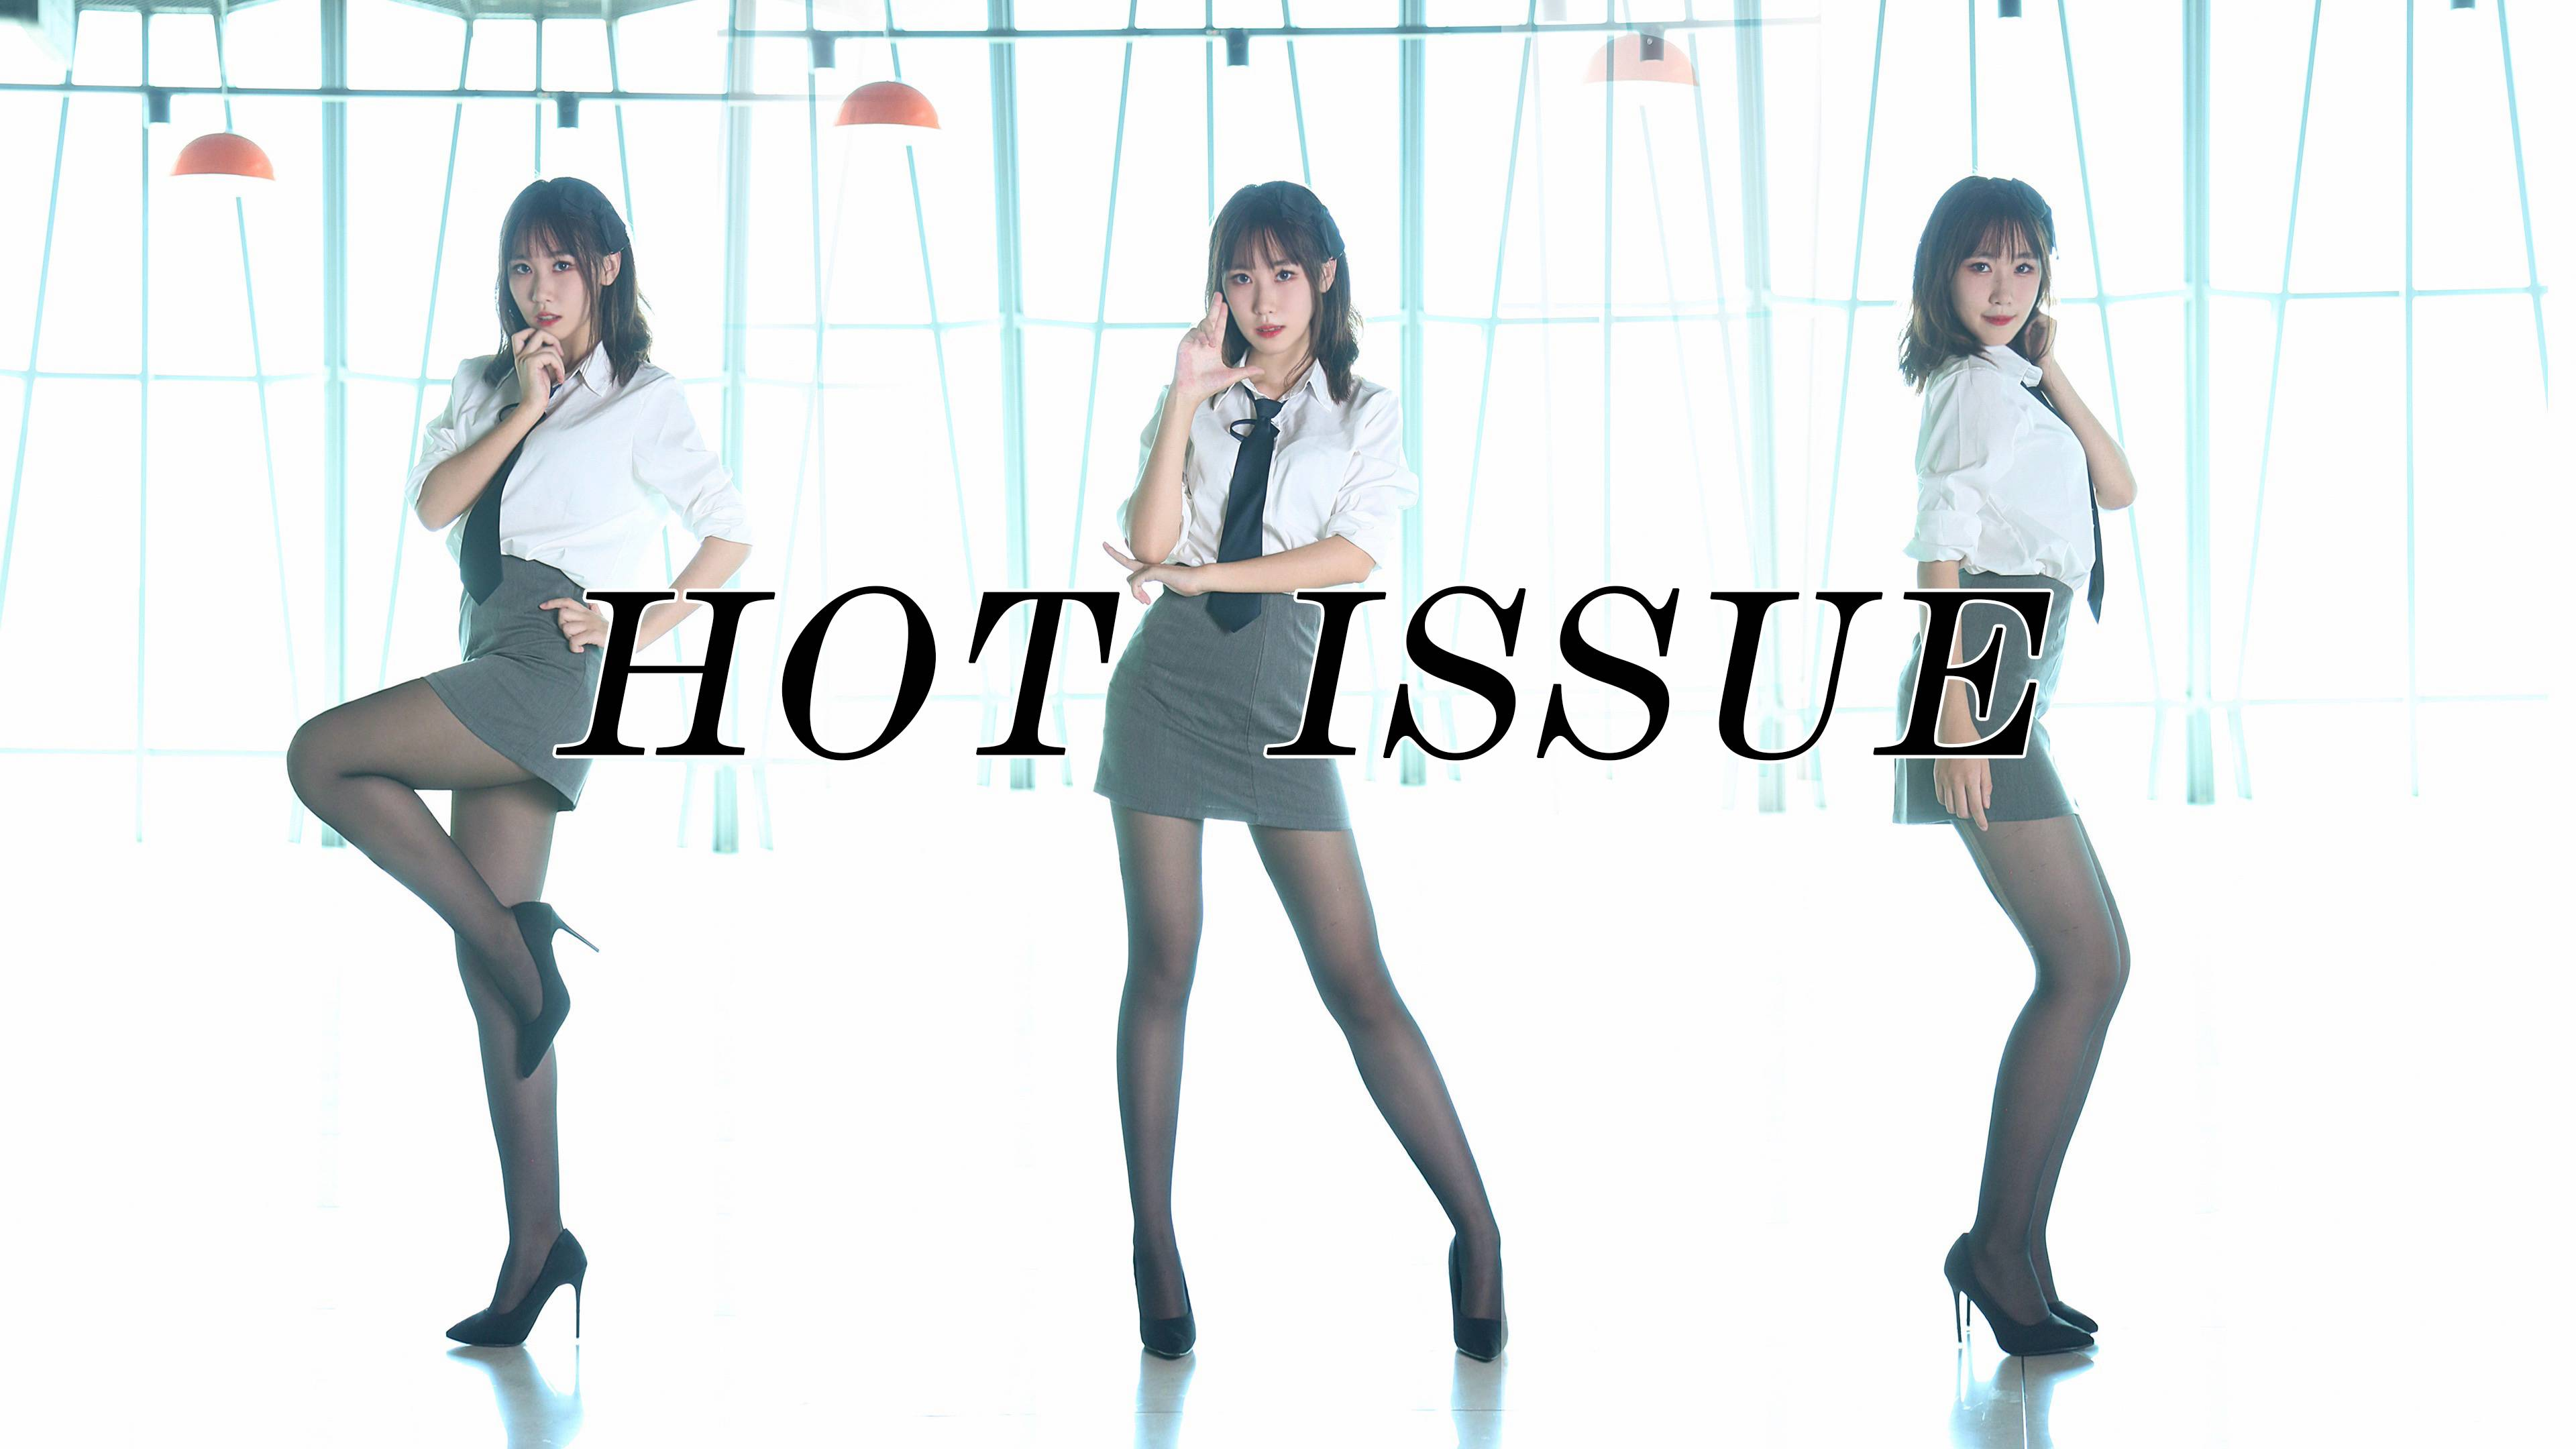 肉感秘书腰扭断翻跳徐穗珍hot issue【陶陶】